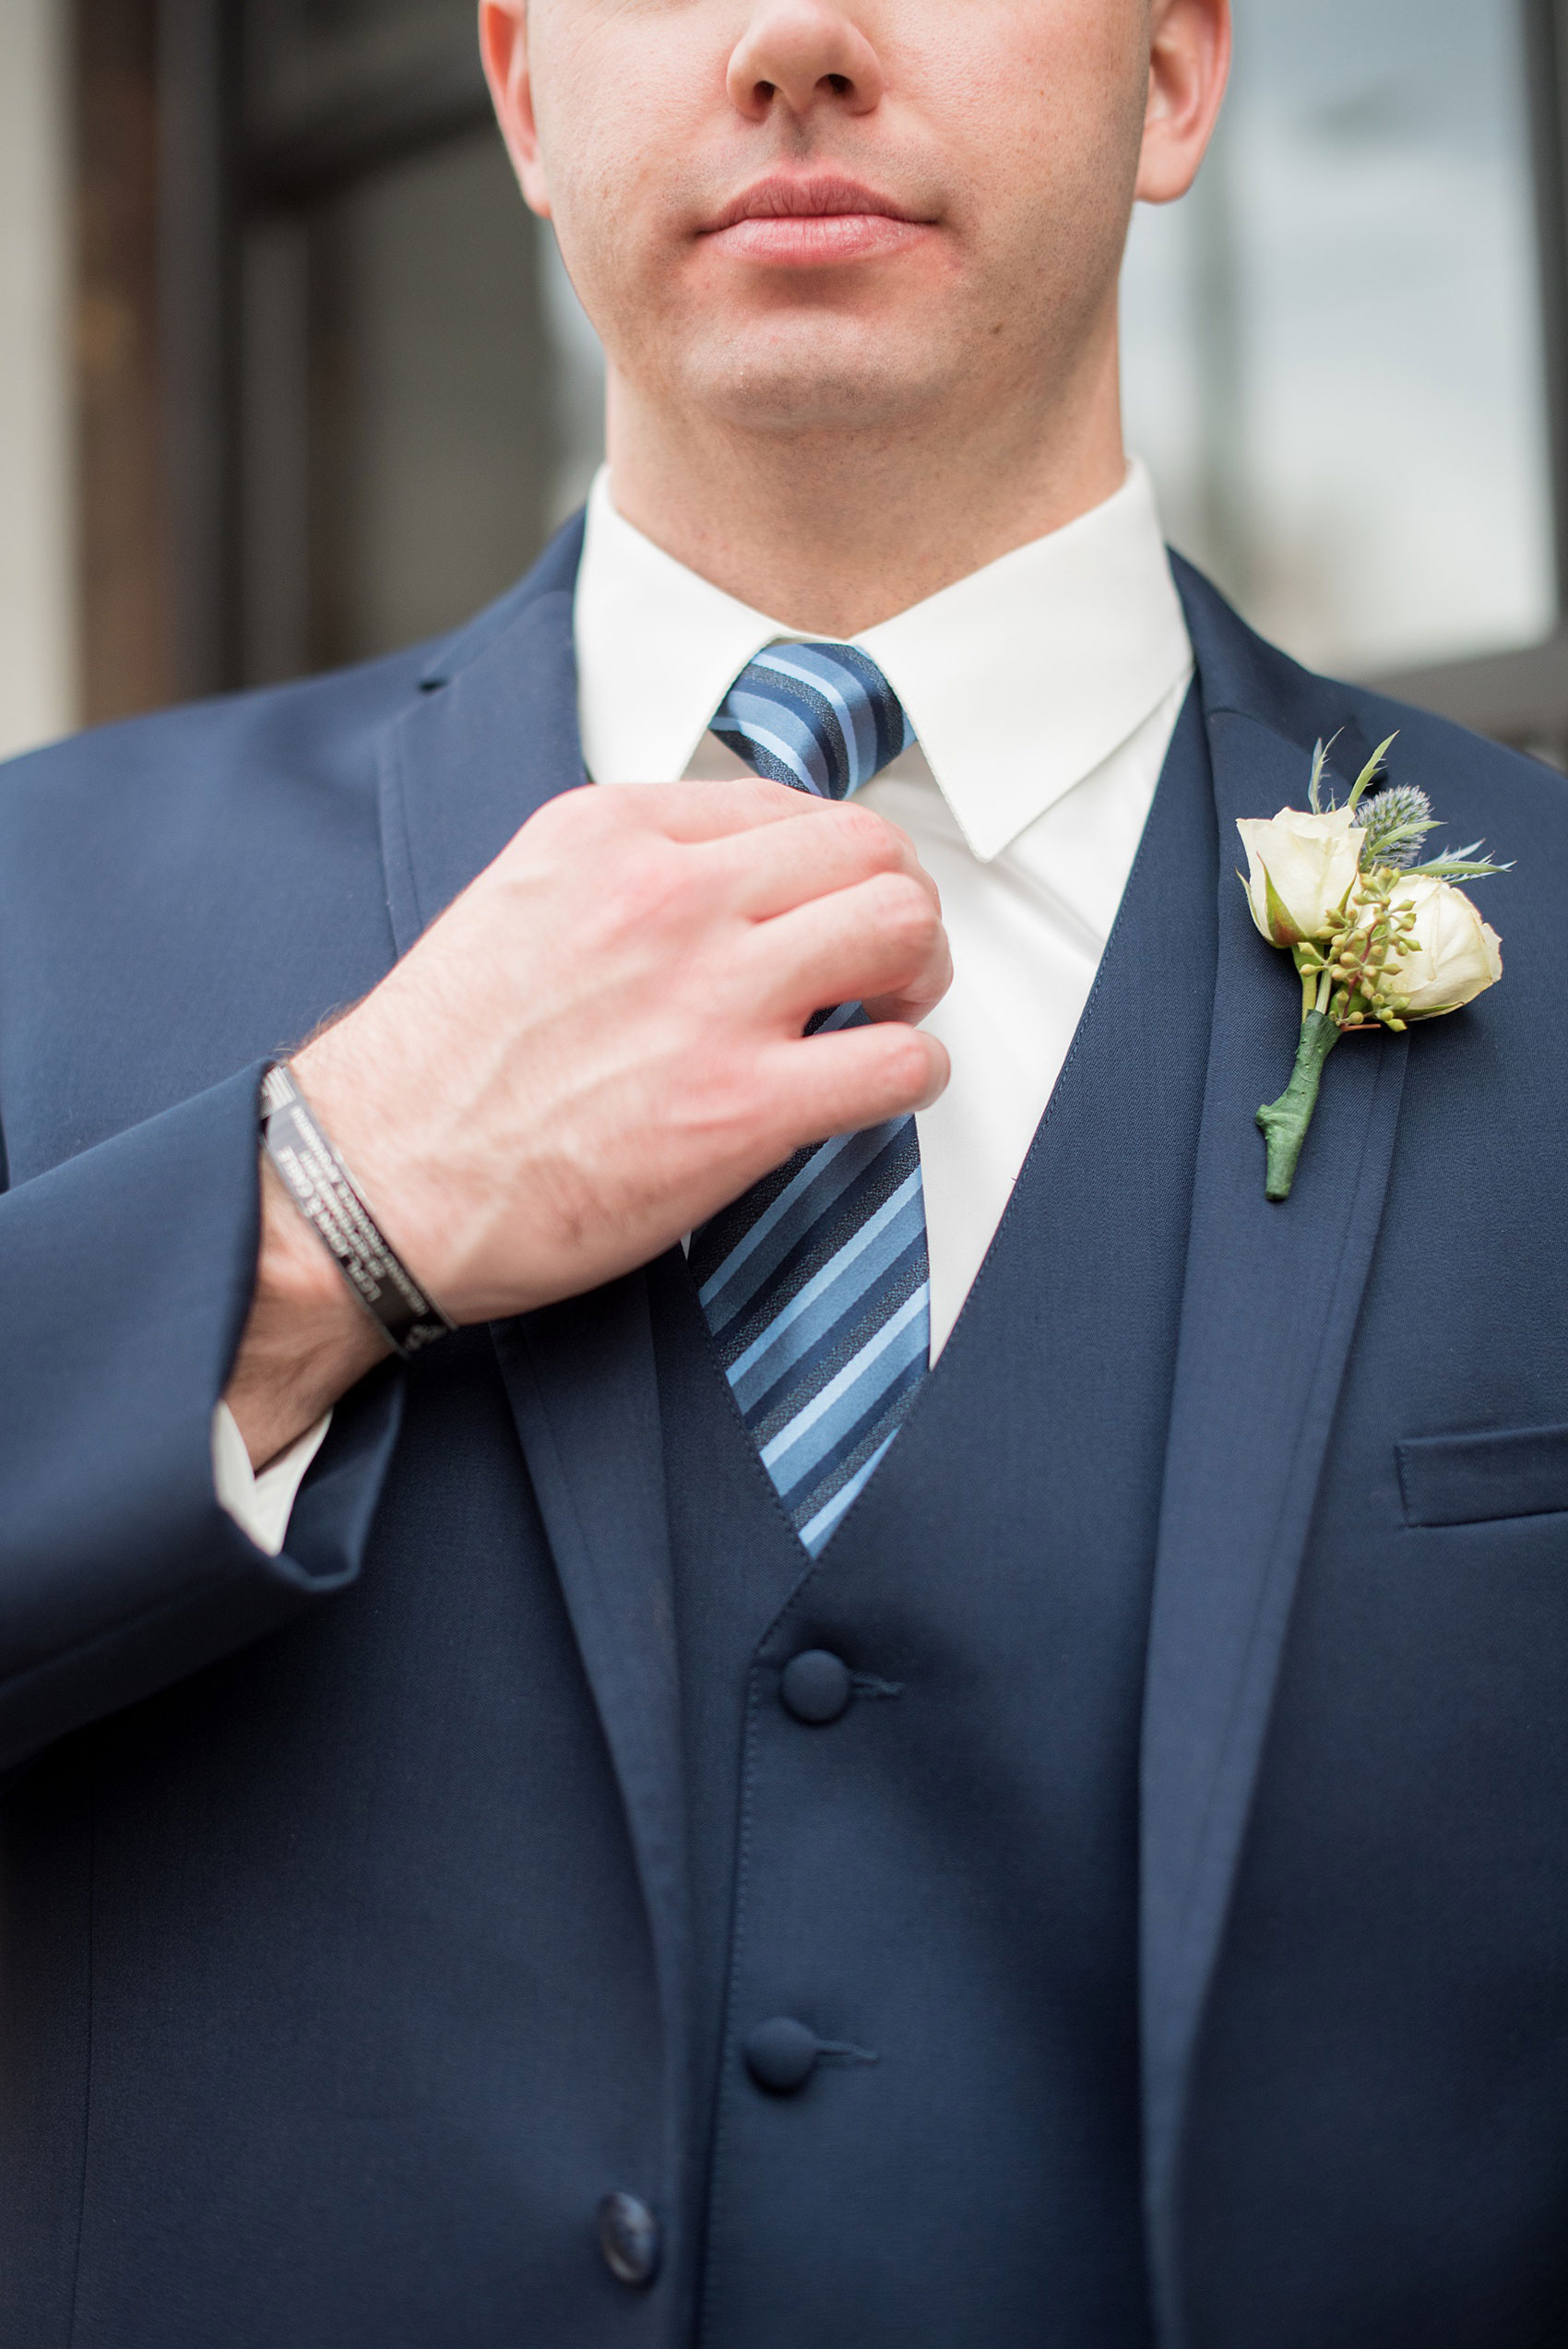 Durham wedding photos at The Cookery by Mikkel Paige Photography in North Carolina. The groom wore a navy double-breasted blue suit with a striped tie and white boutonniere.